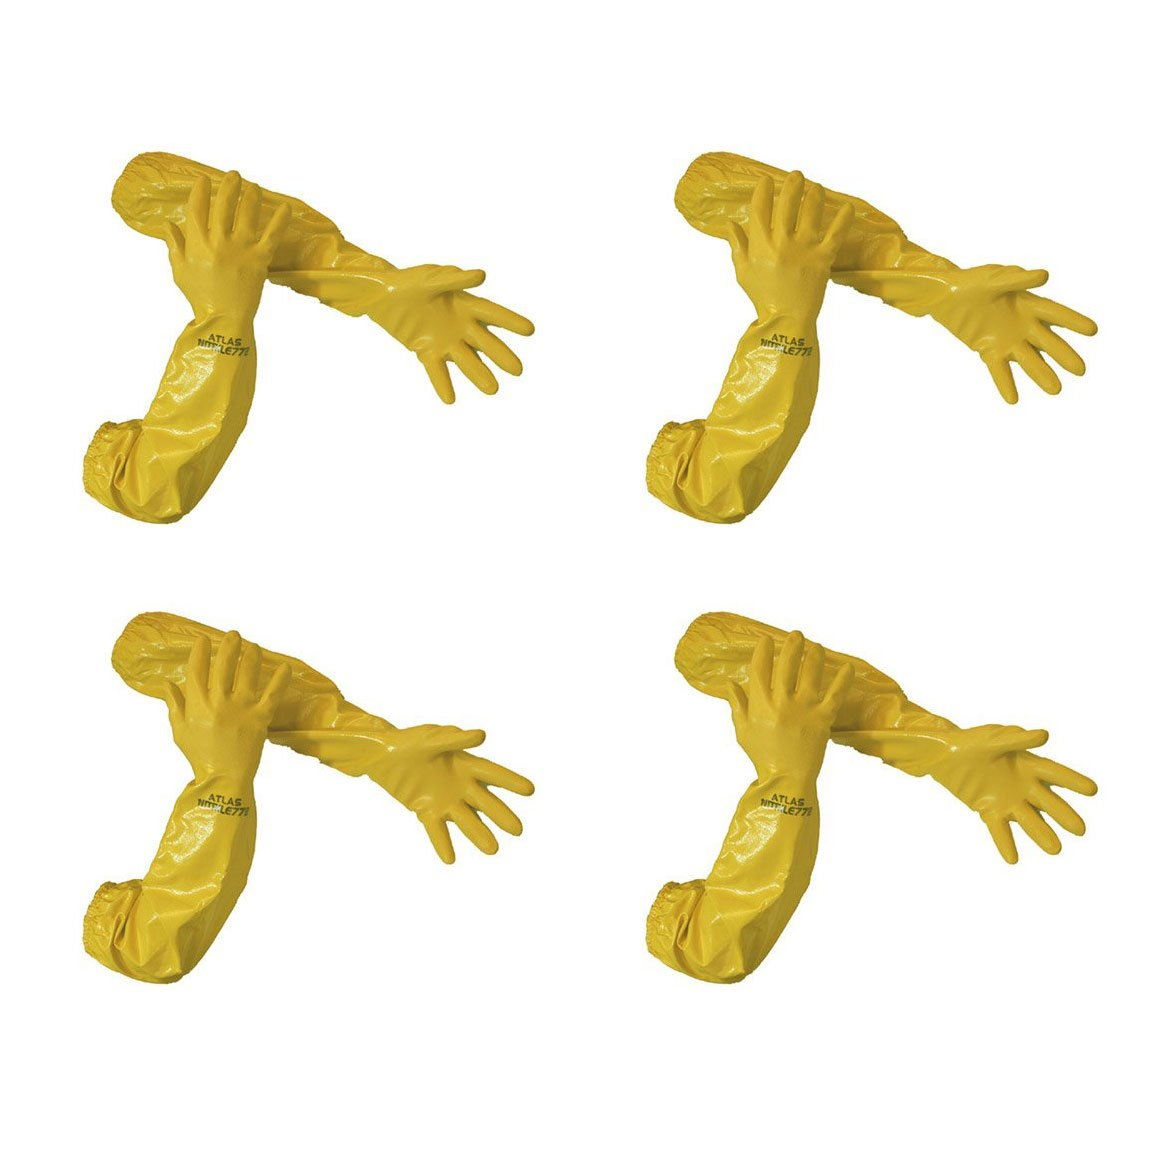 Atlas 772 26-inch Nitrile Large Elbow Chemical Resistant Yellow Gloves, 4-Pairs